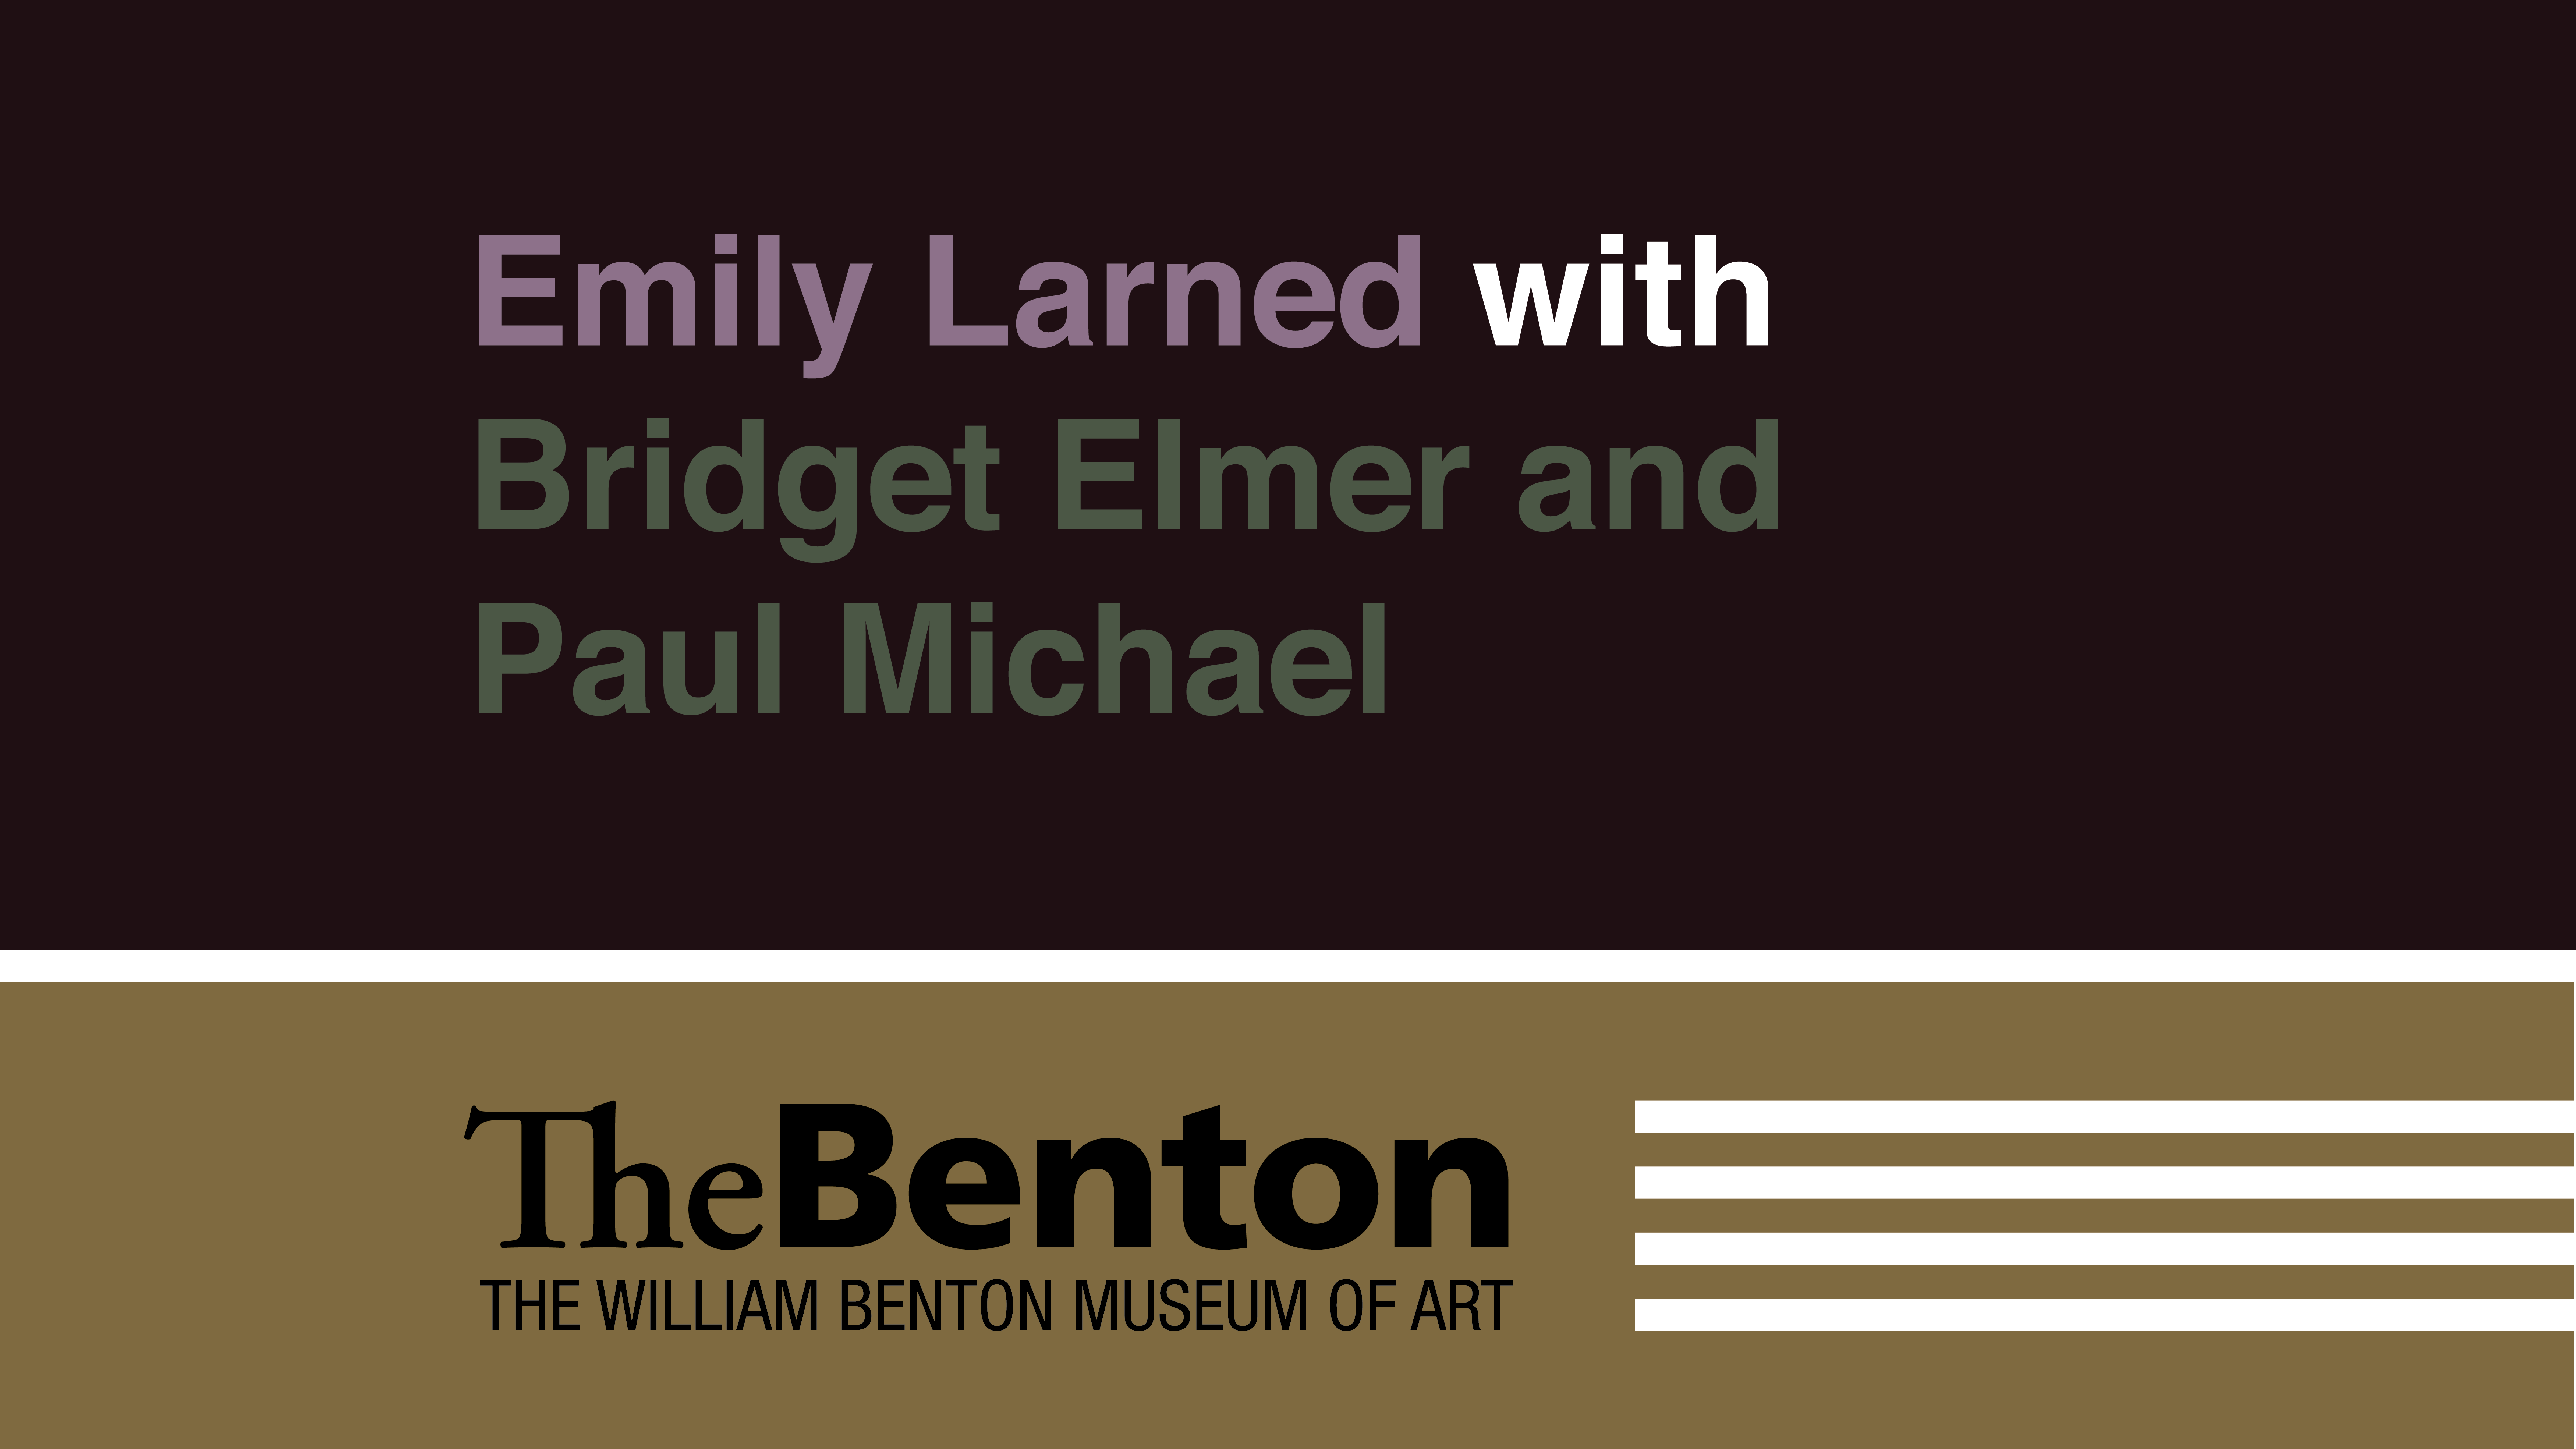 Emily Larned with Bridget Elmer and Paul Michael